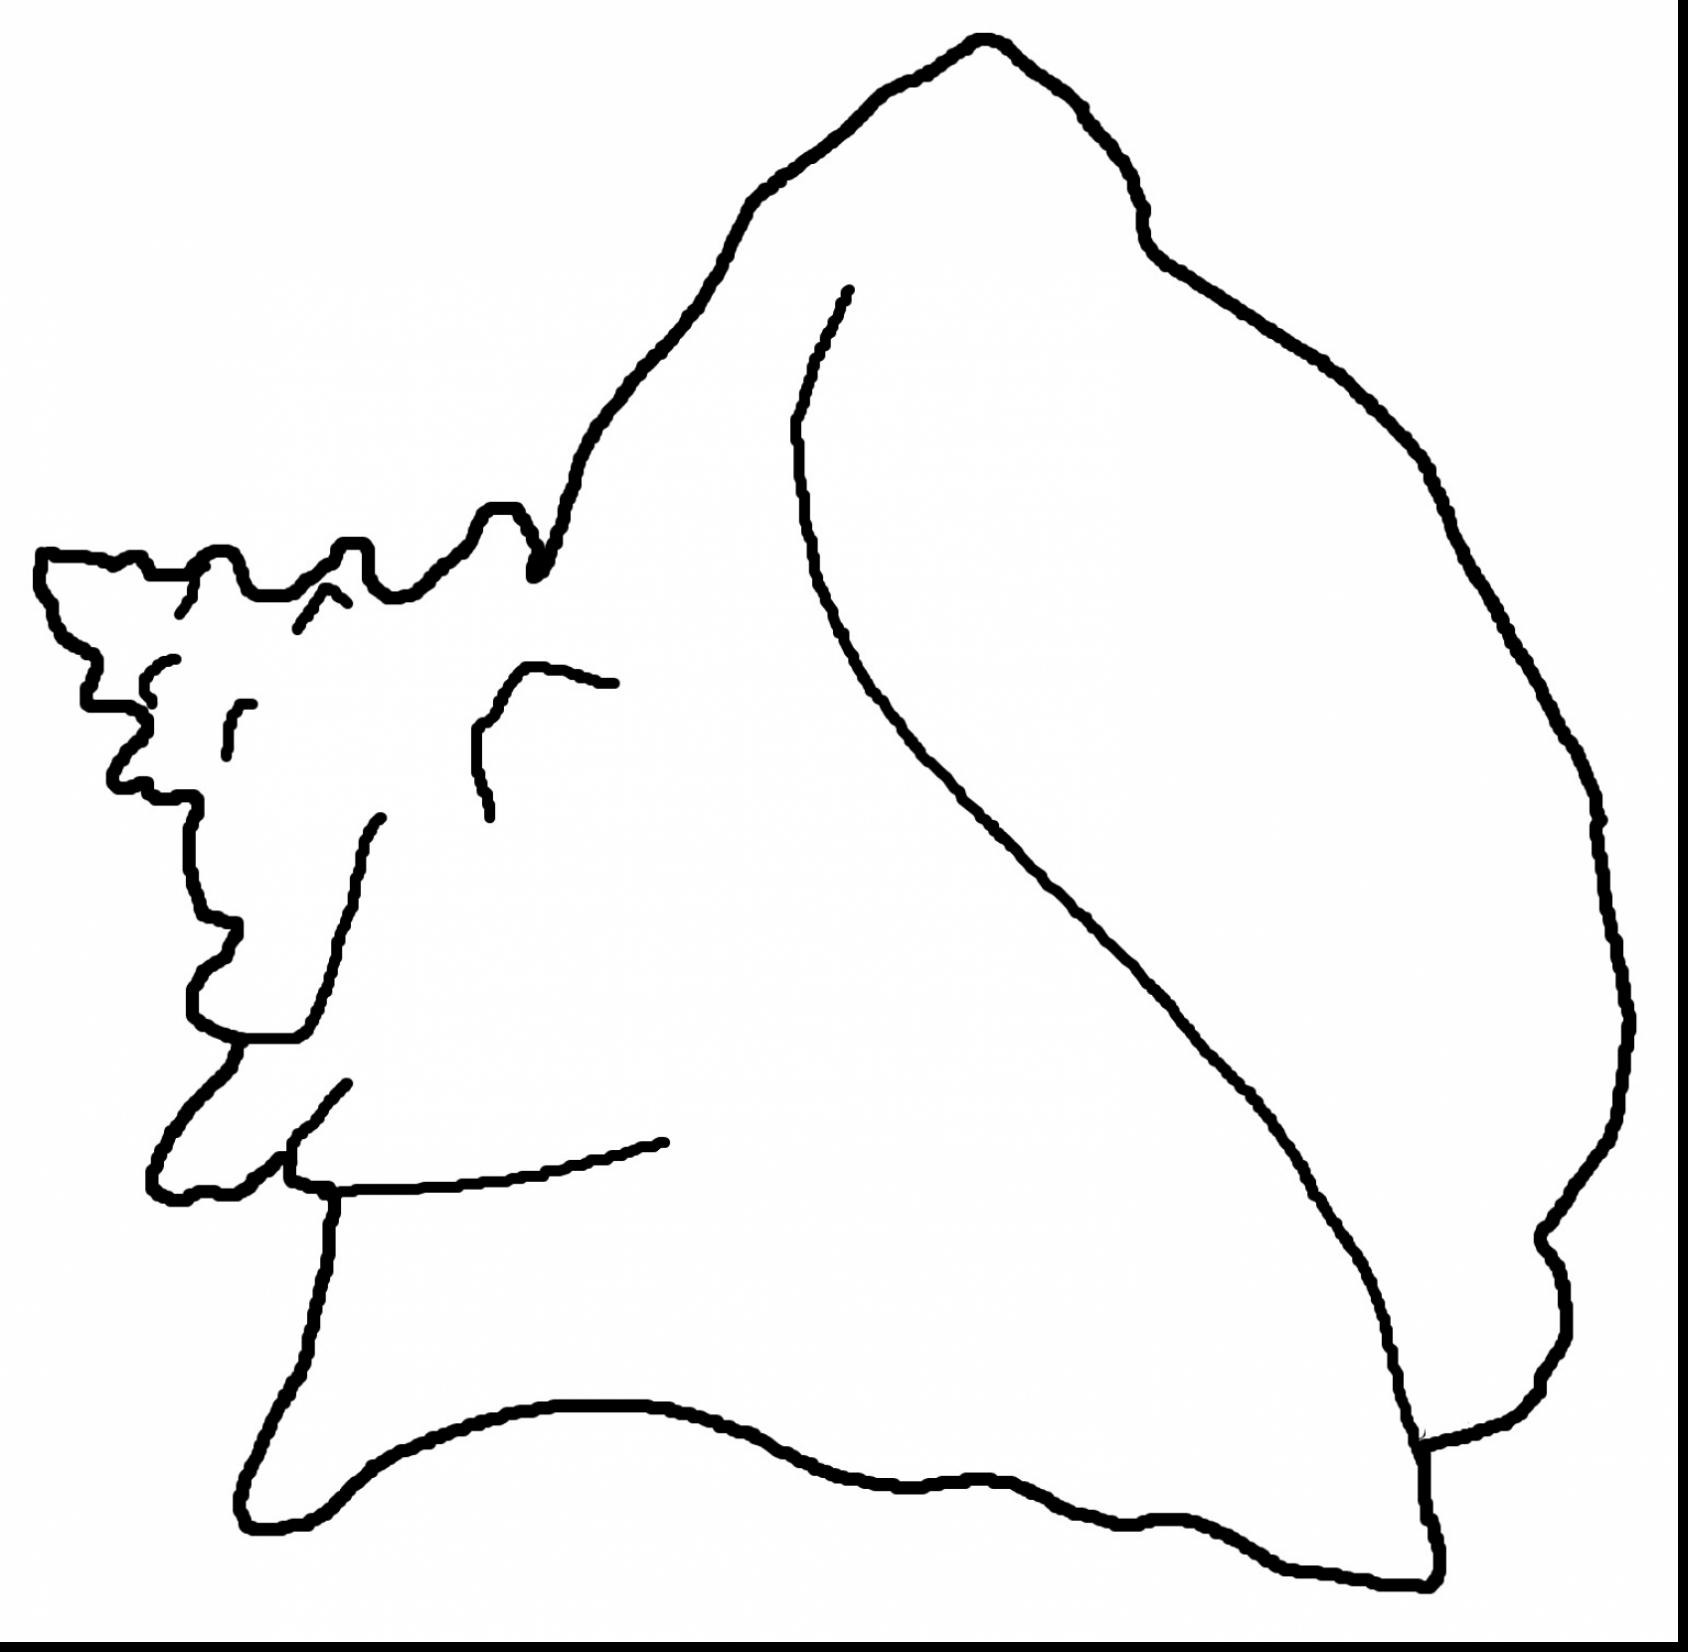 Shell Outline